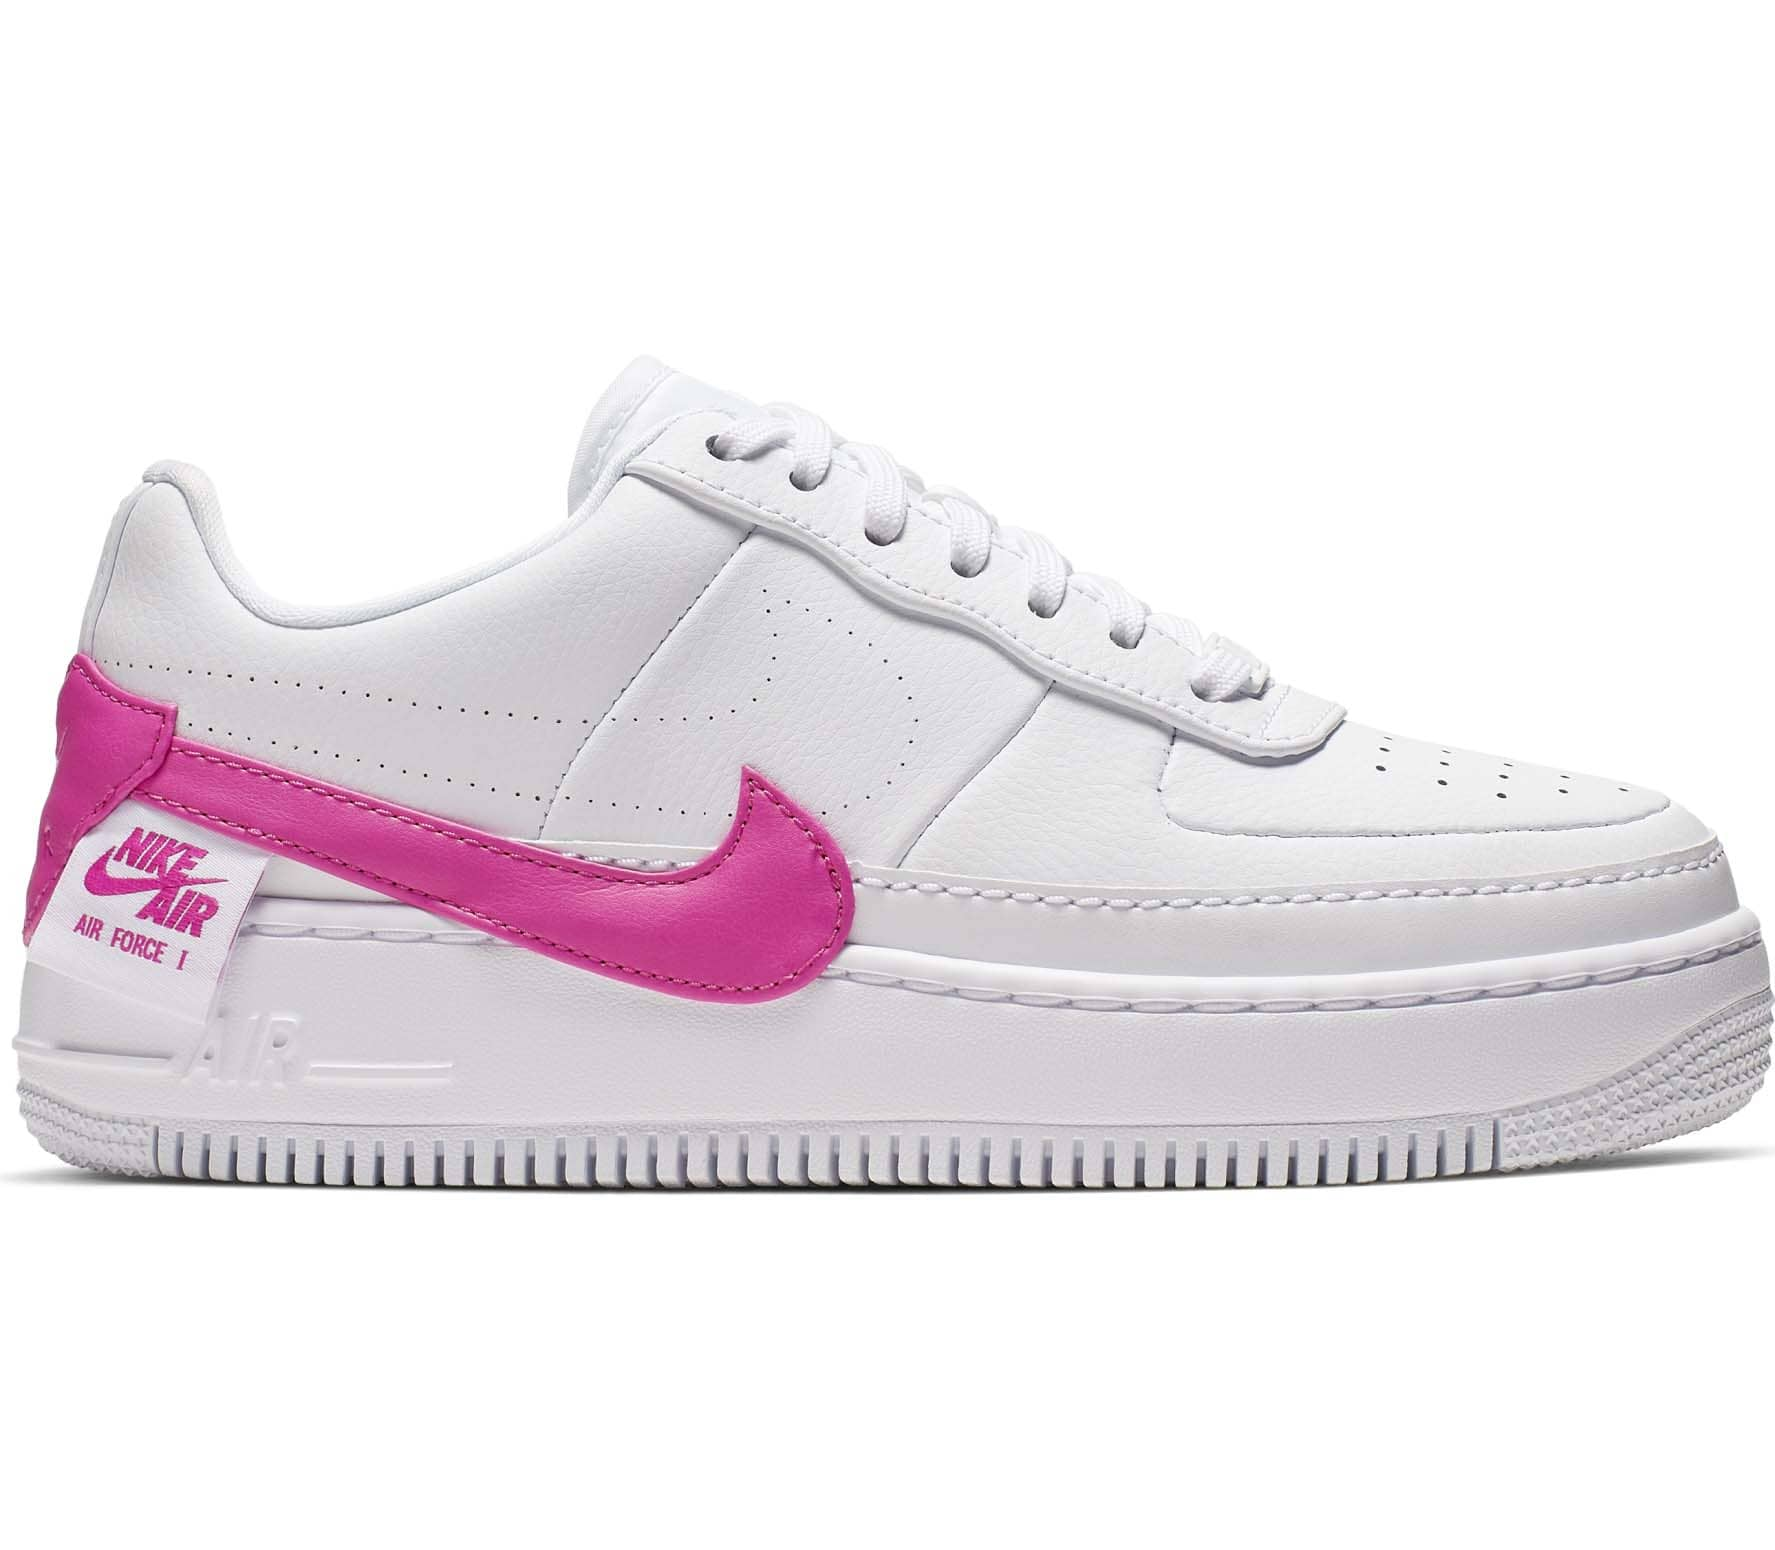 économiser b48ef cd1c4 Nike Sportswear Air Force 1 Jester XX Femmes Baskets blanc